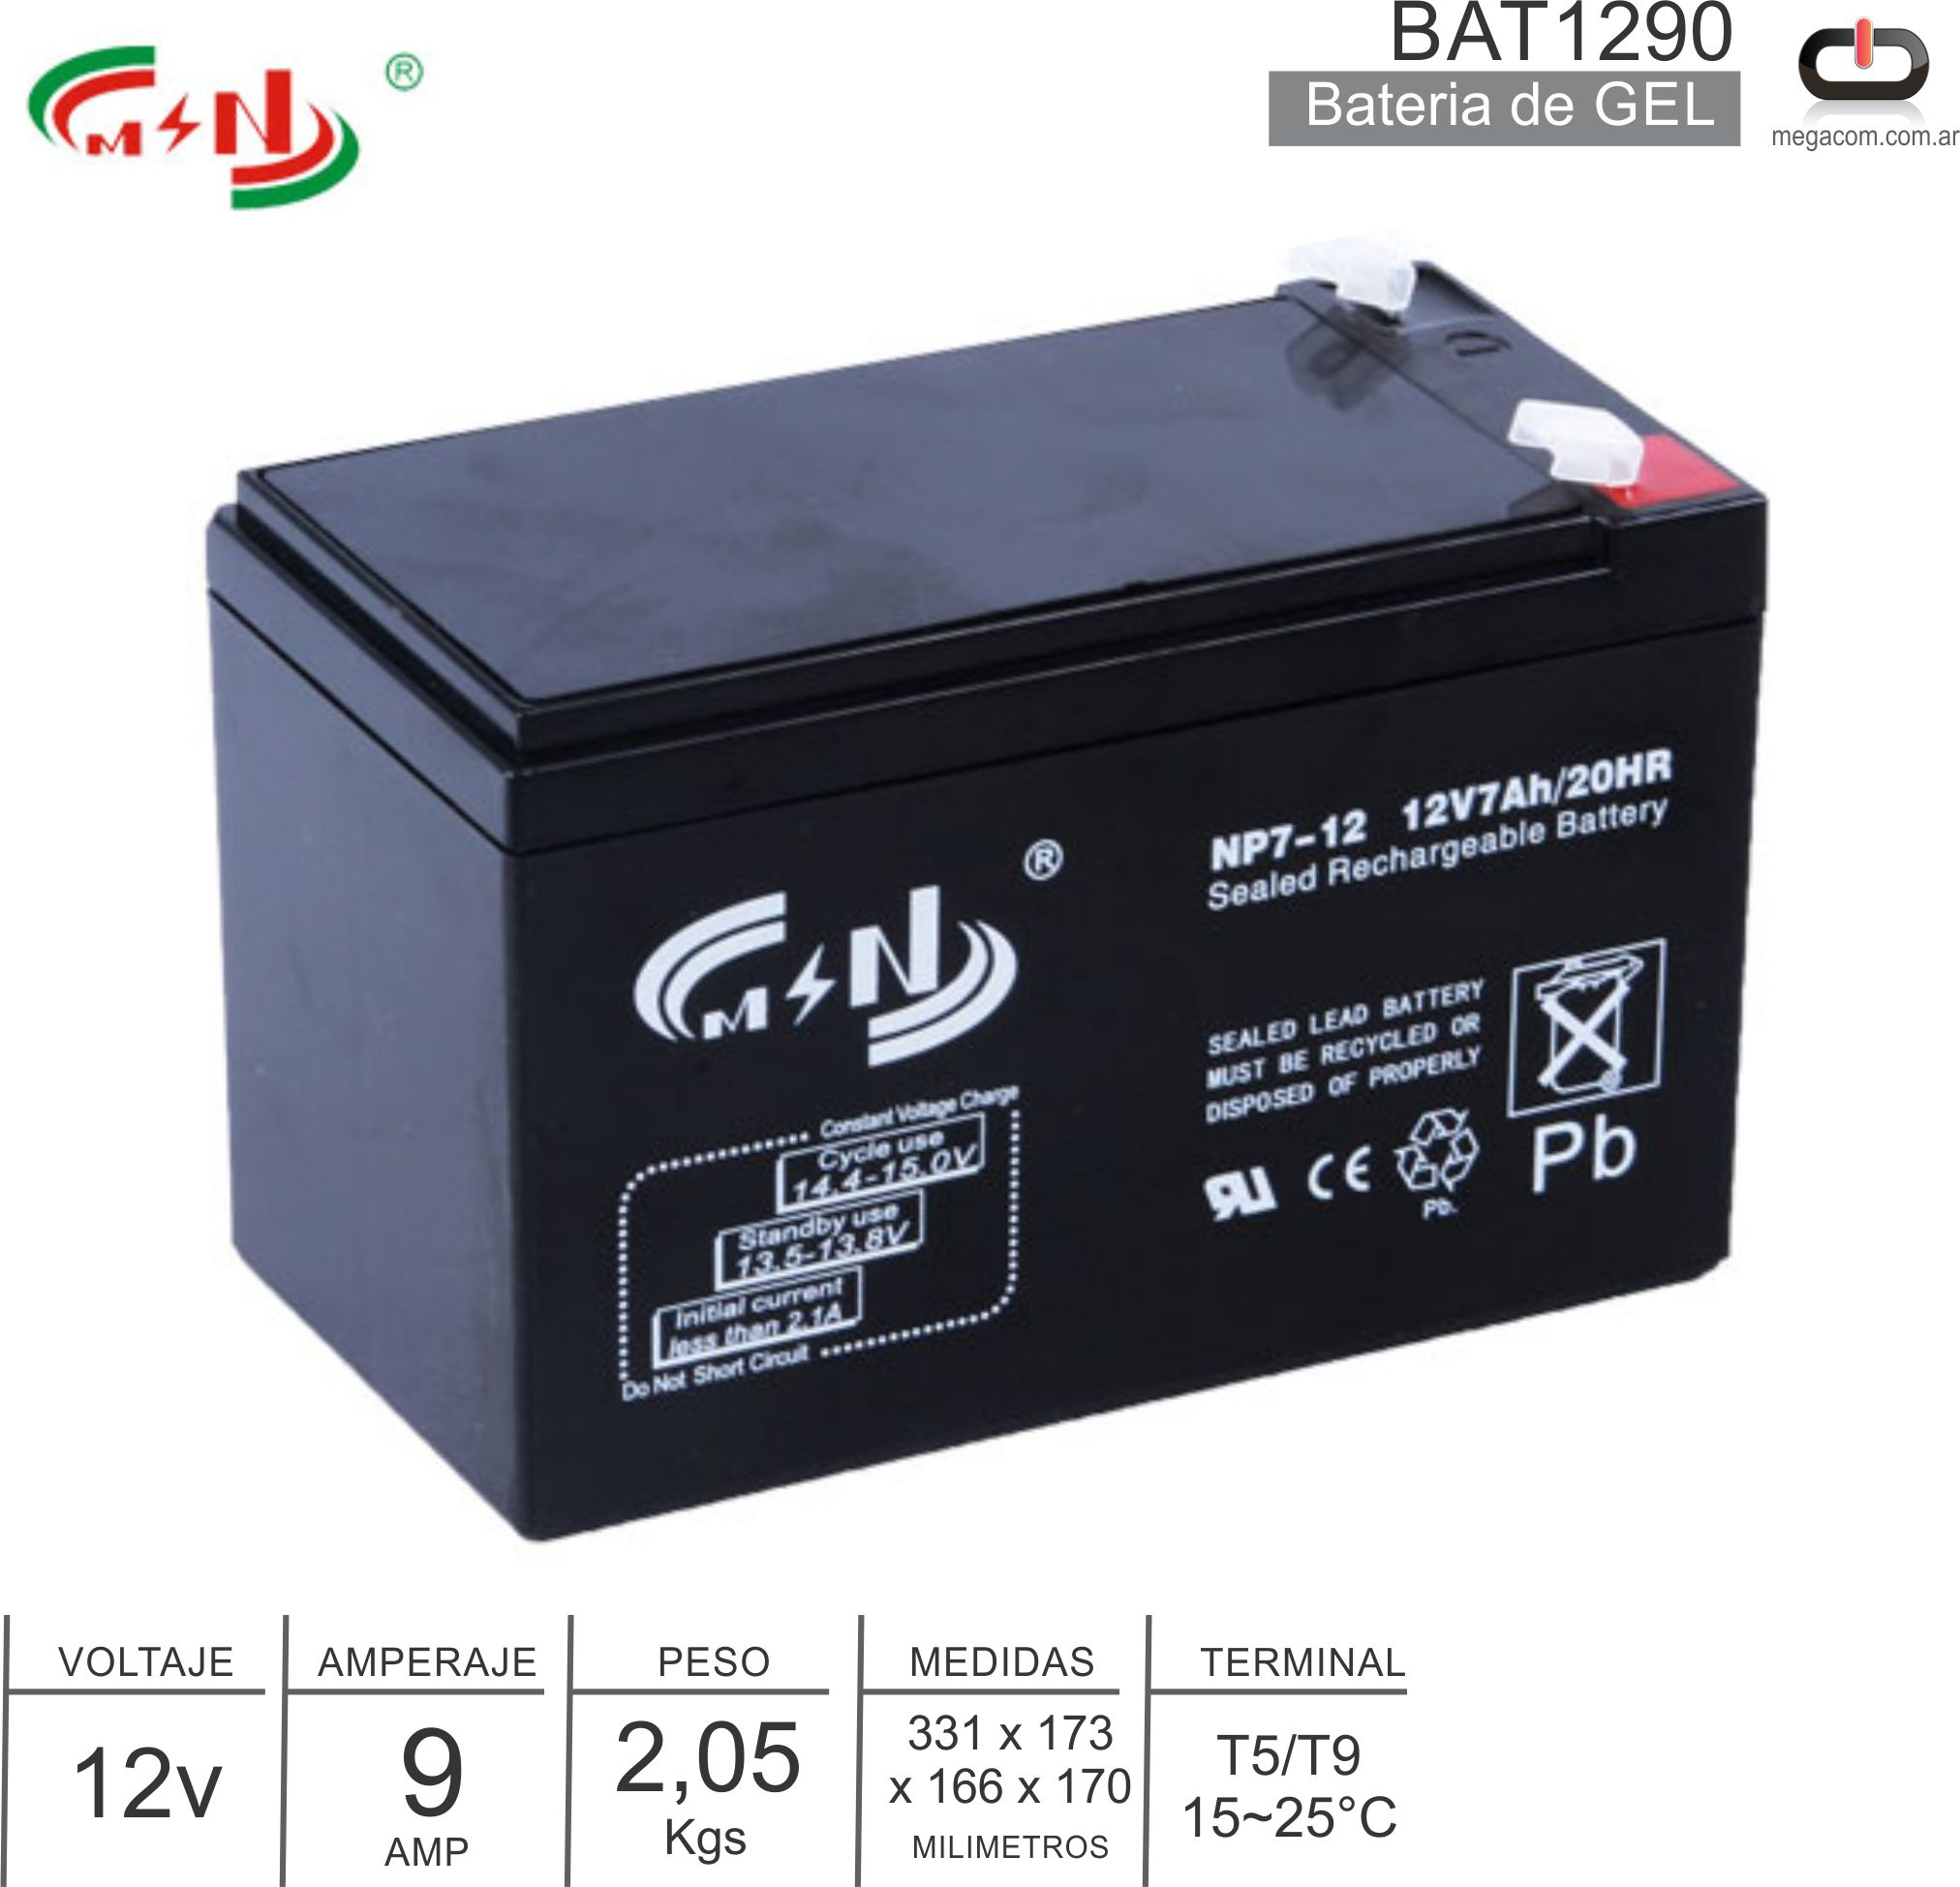 Bateria Gel MSN BAT1290 12V 9 Amp